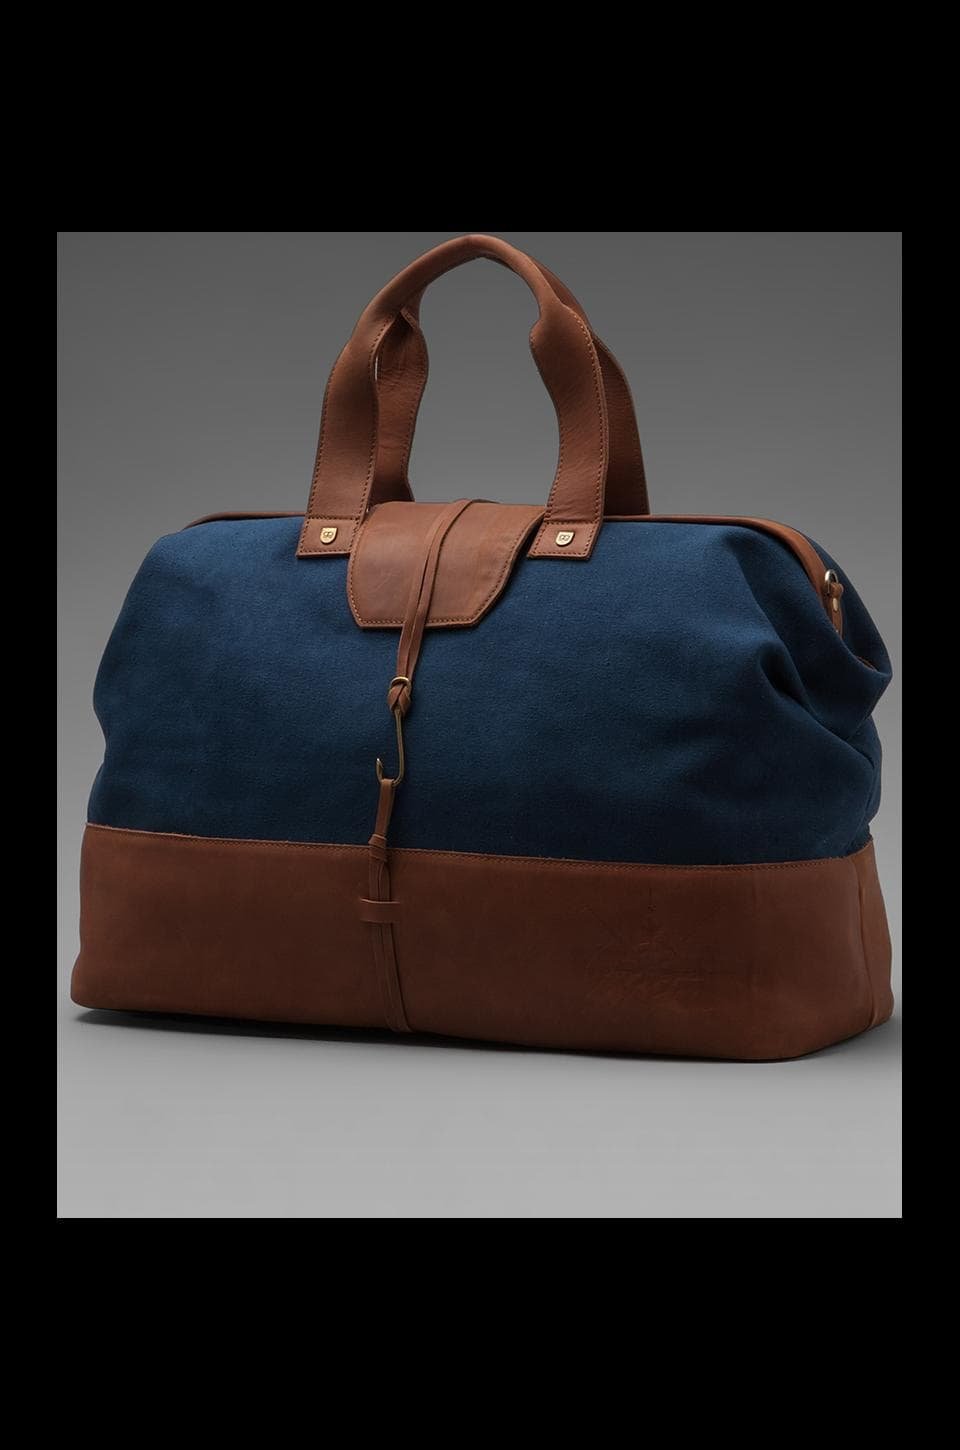 Griffin Anderson Boat Bag in Navy/ Cognac